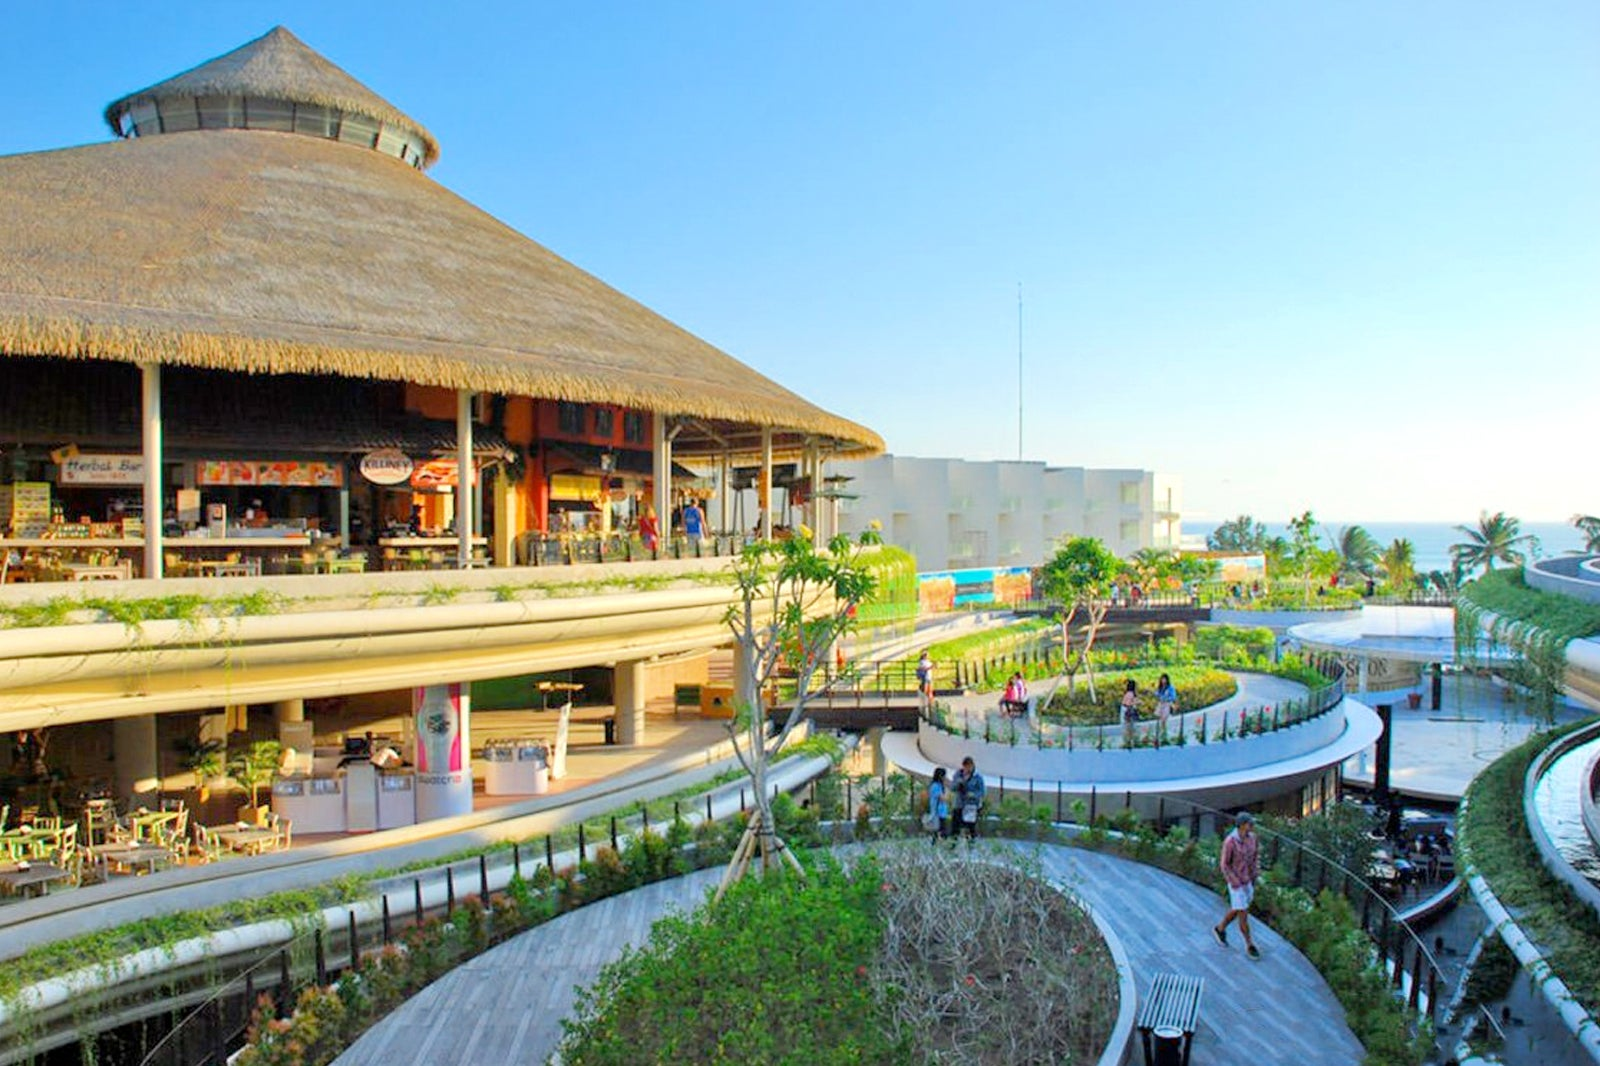 15 Best Places To Go Shopping In Kuta Where To Shop And